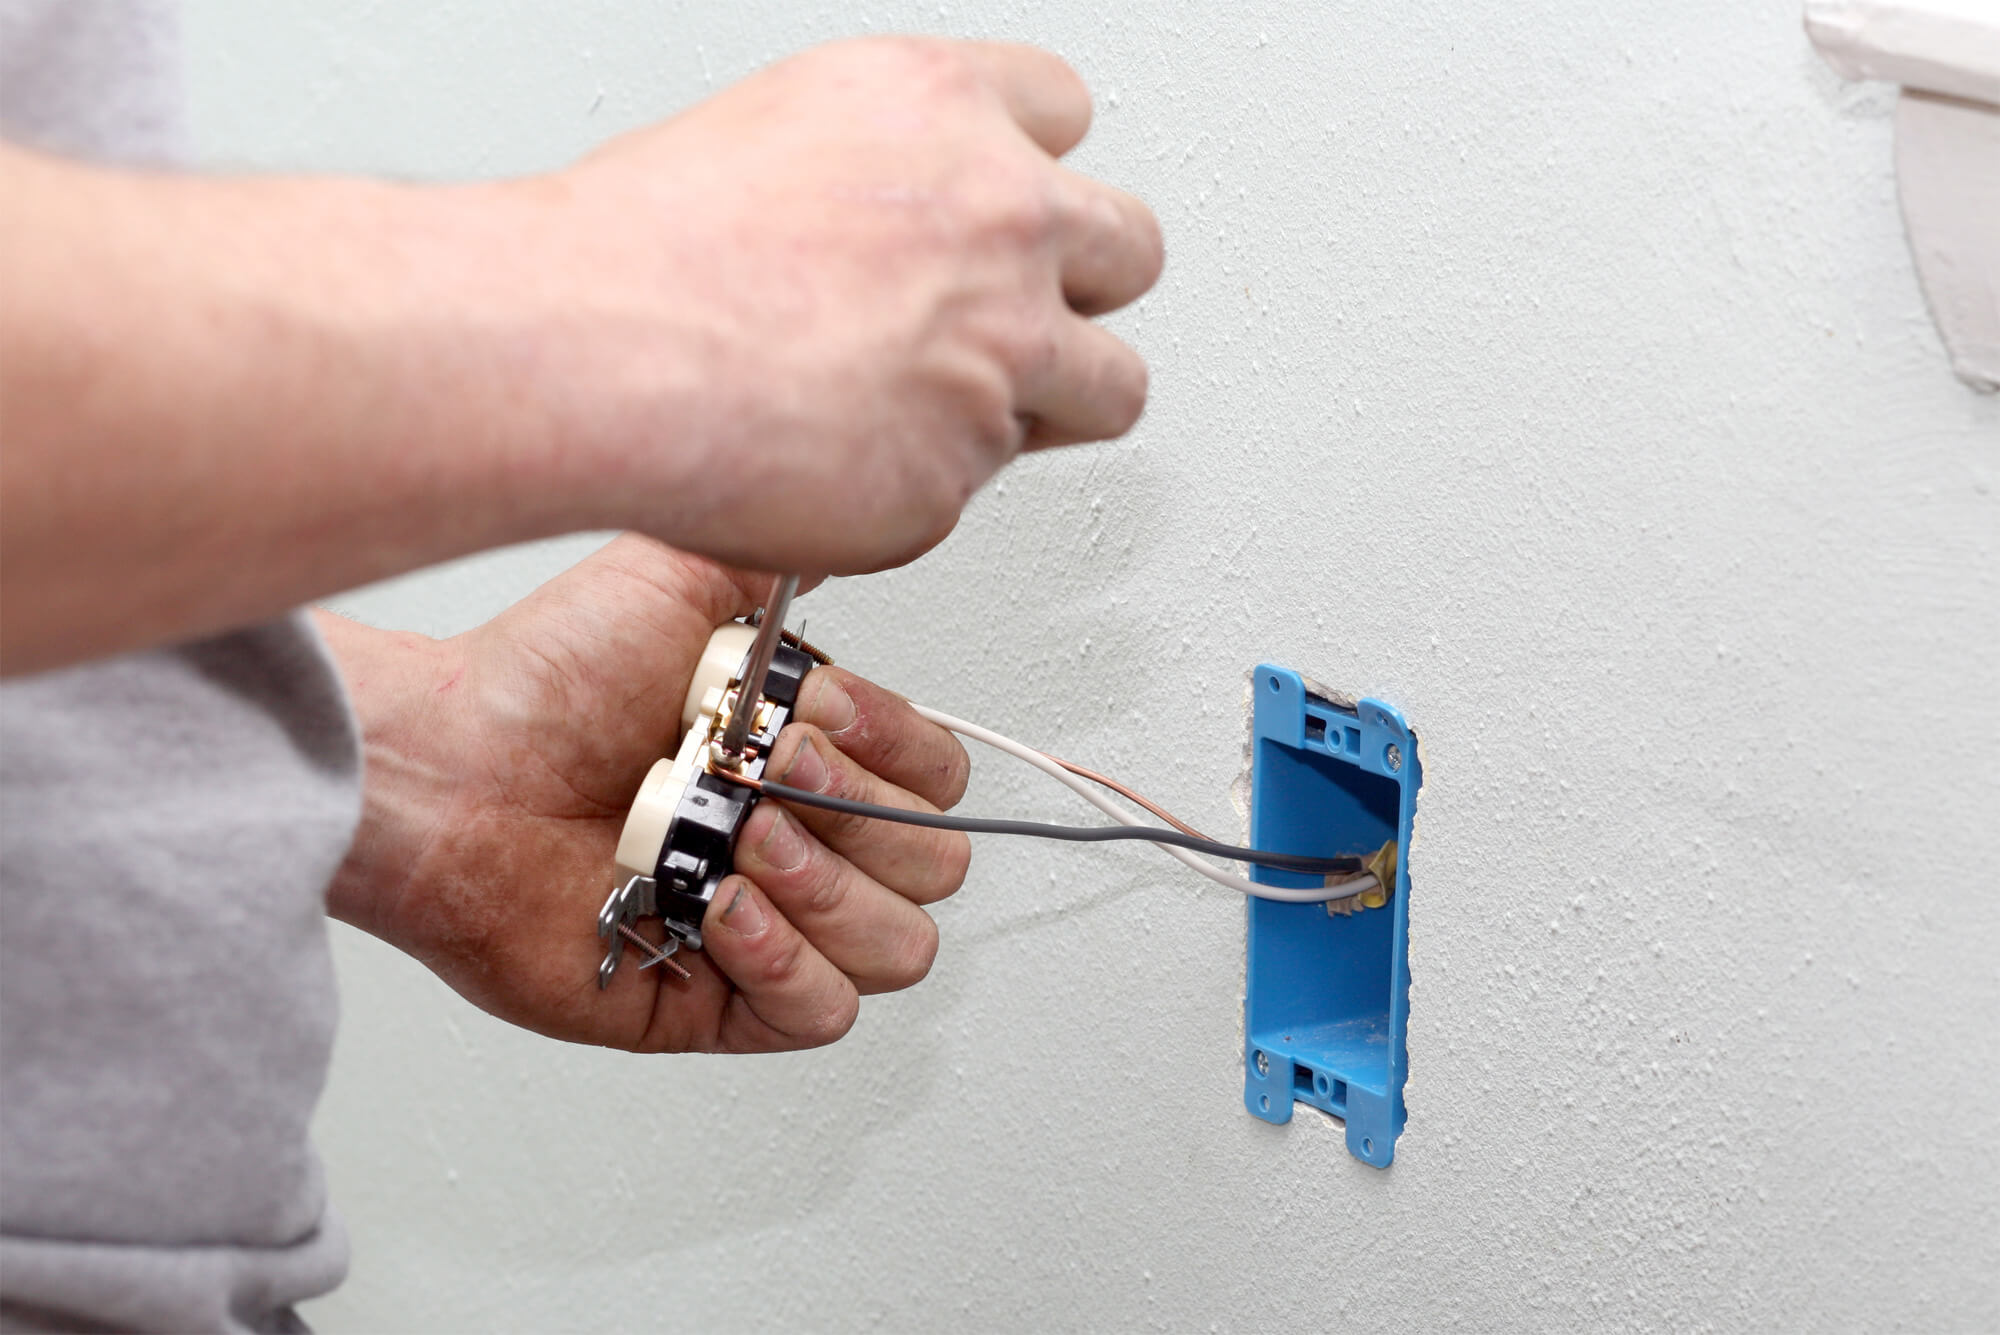 Loose Electrical Outlet Box? Get an electrician to repair it